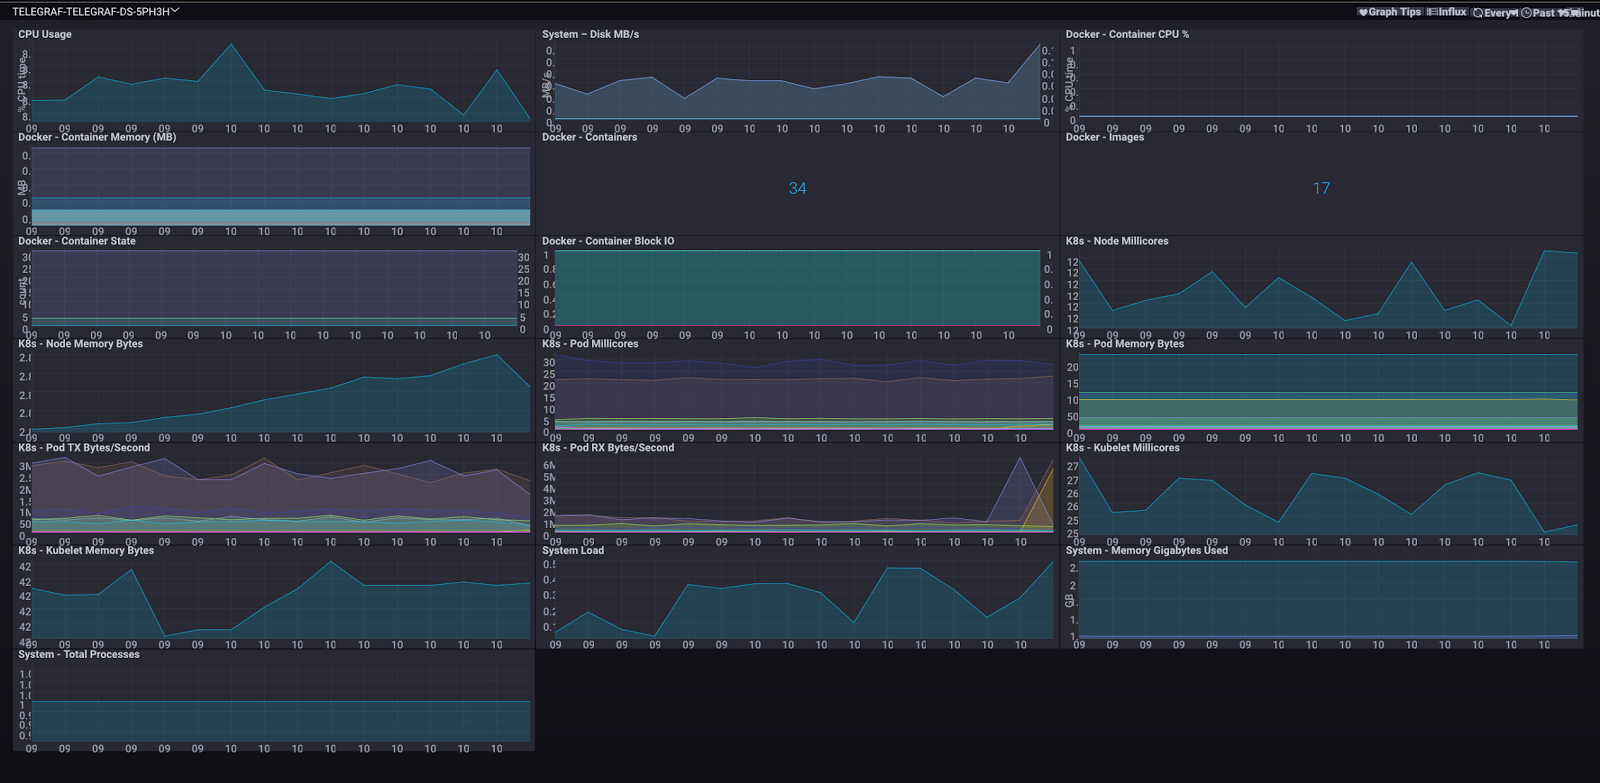 How To Install TICK Stack on Ubuntu, CentOS For System Metrics Monitoring